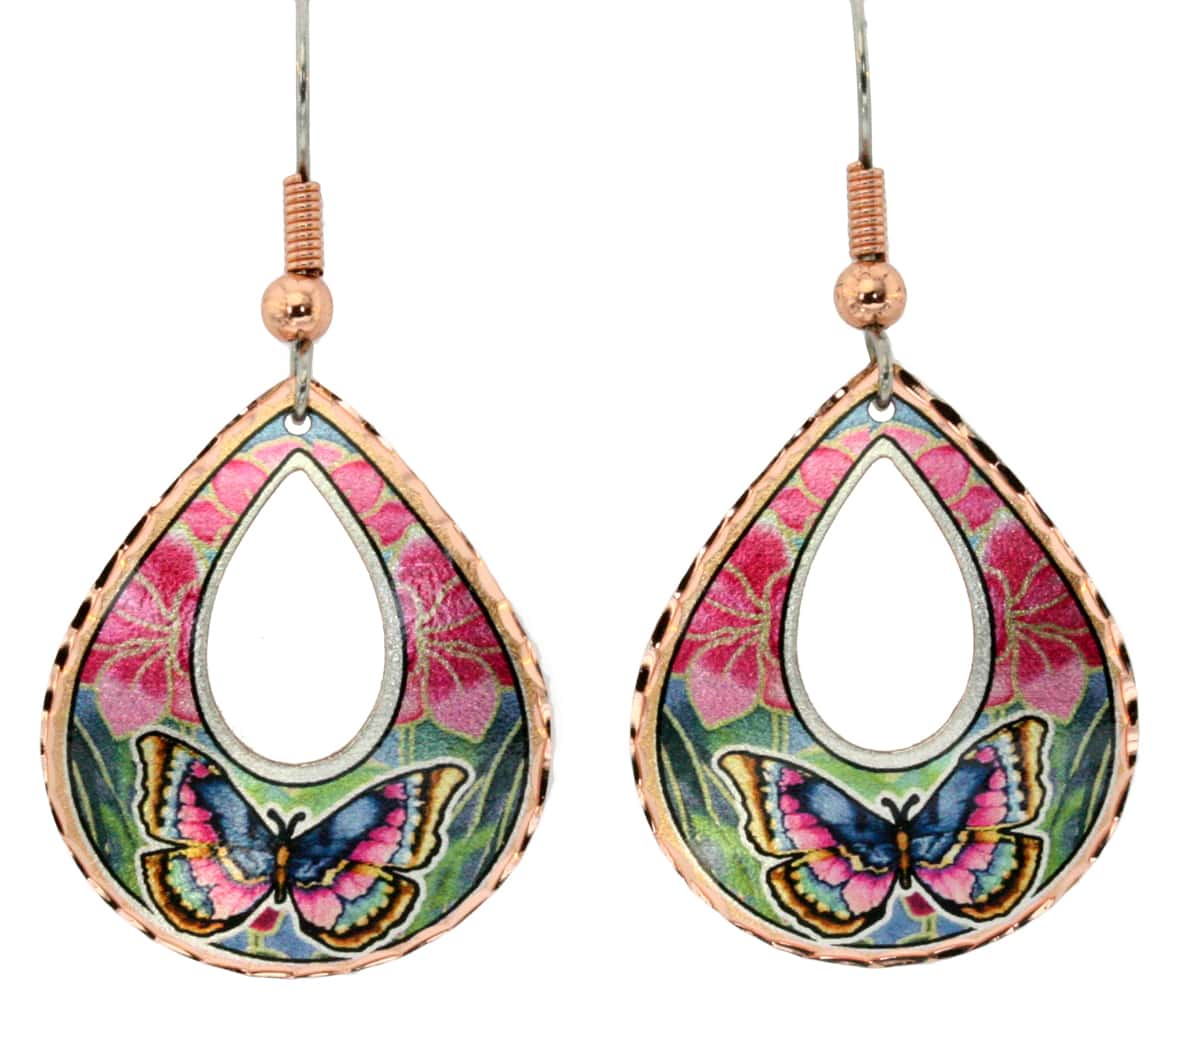 Buy teardrop shaped butterfly earrings created in vibrant colors to make you smile